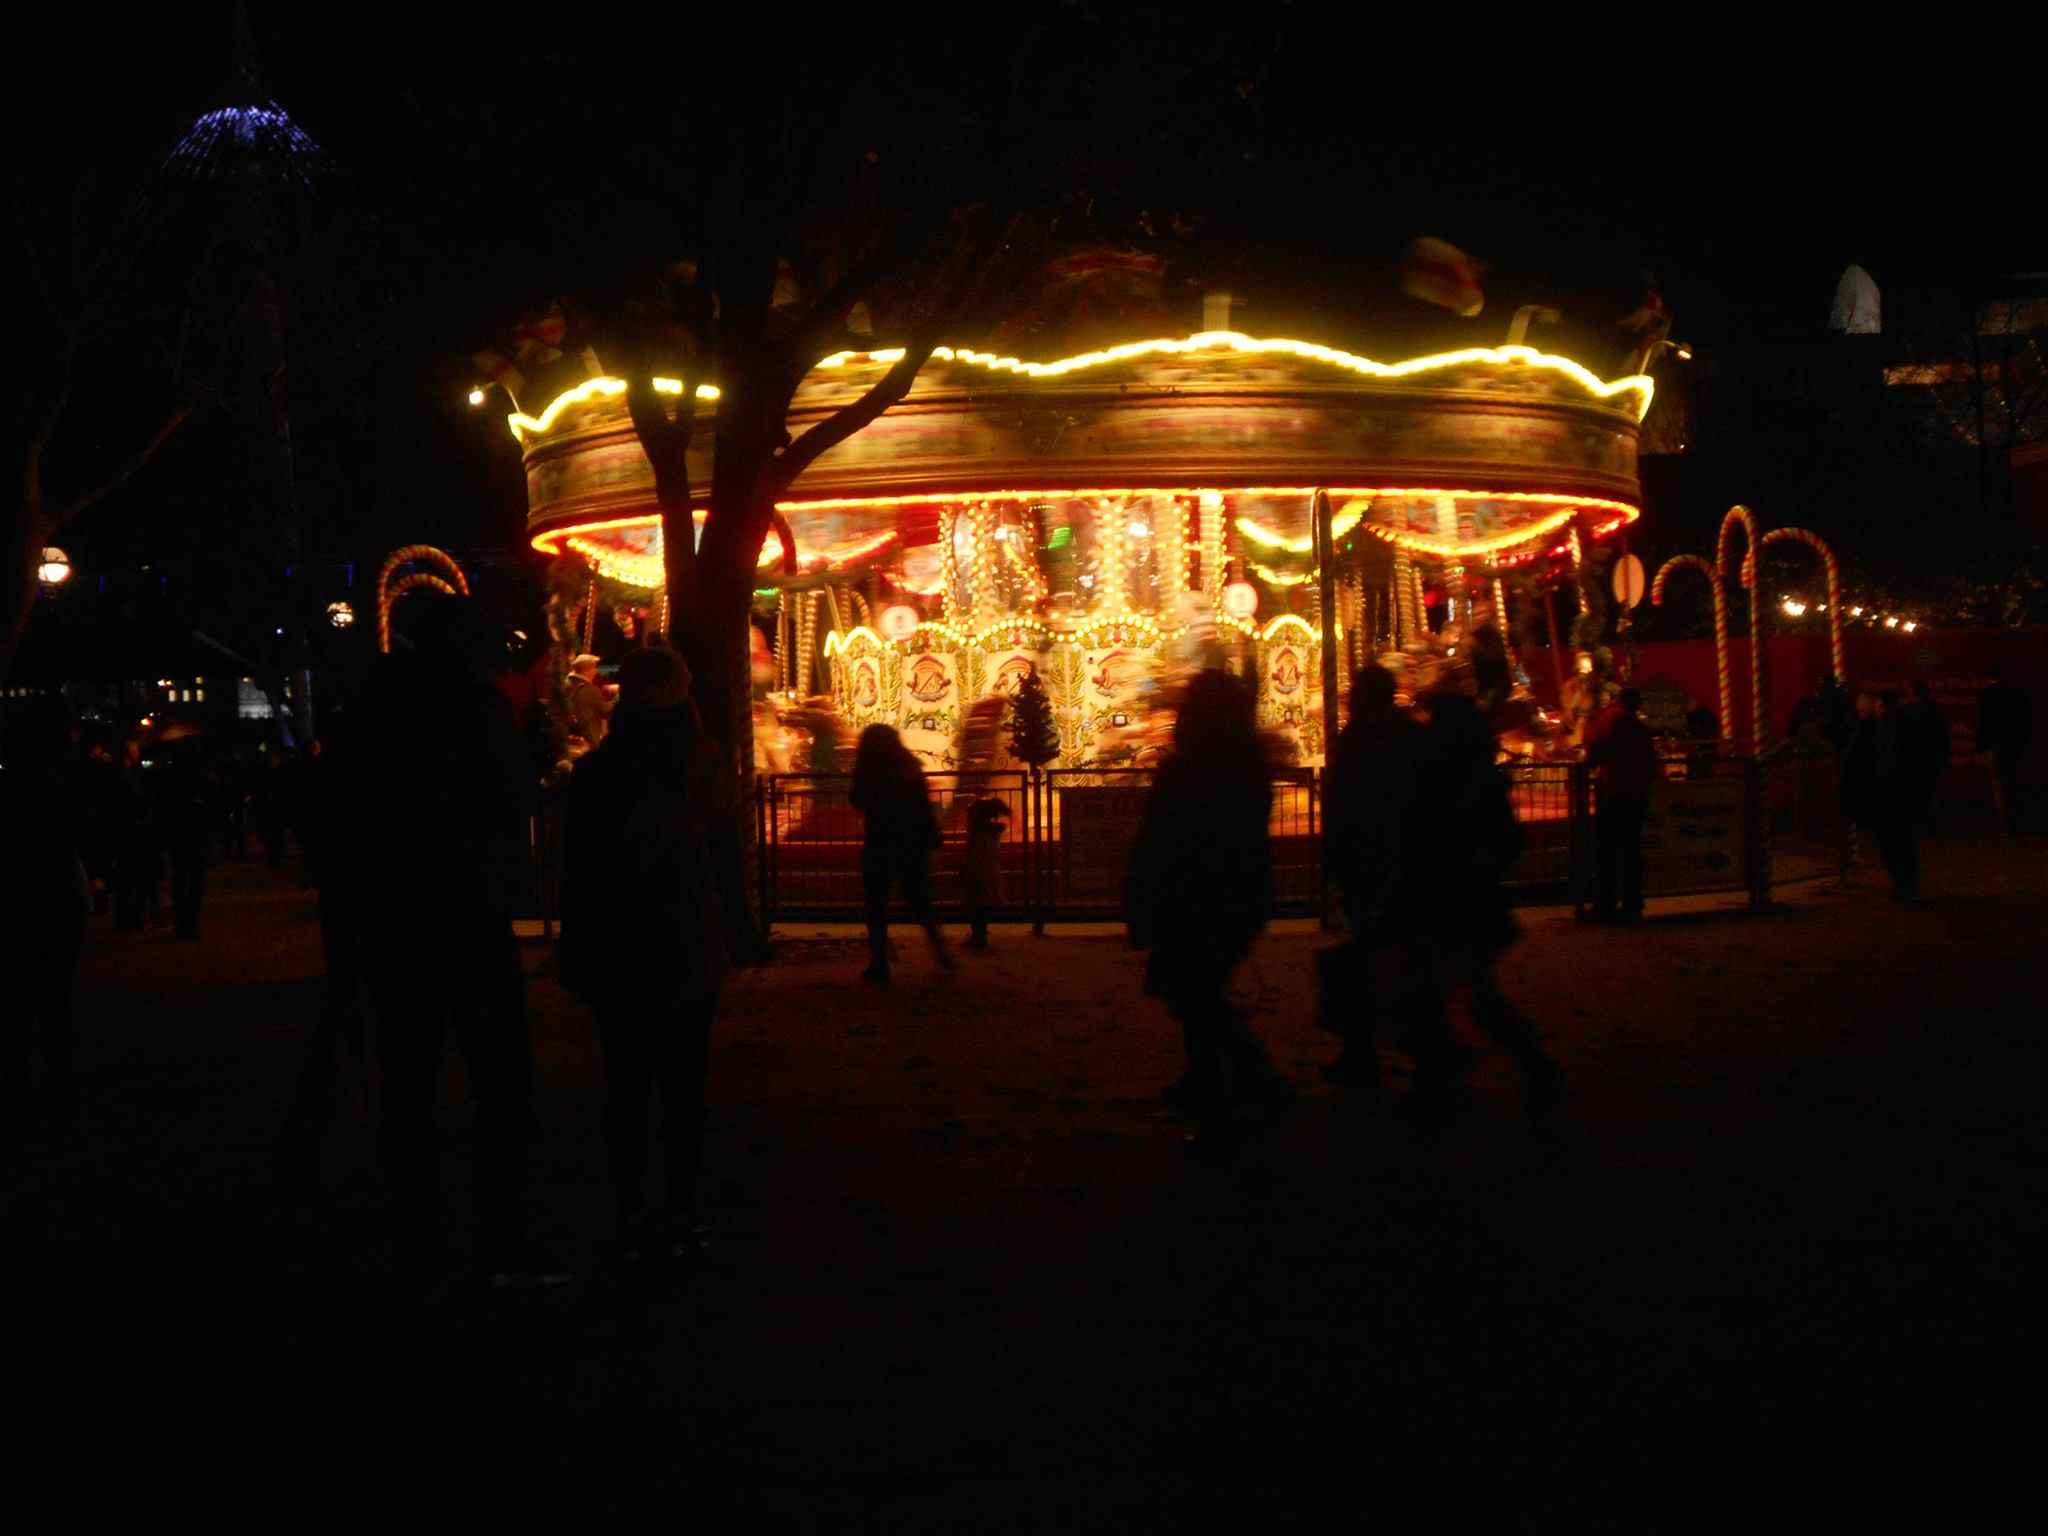 Carousel at Night in the UK